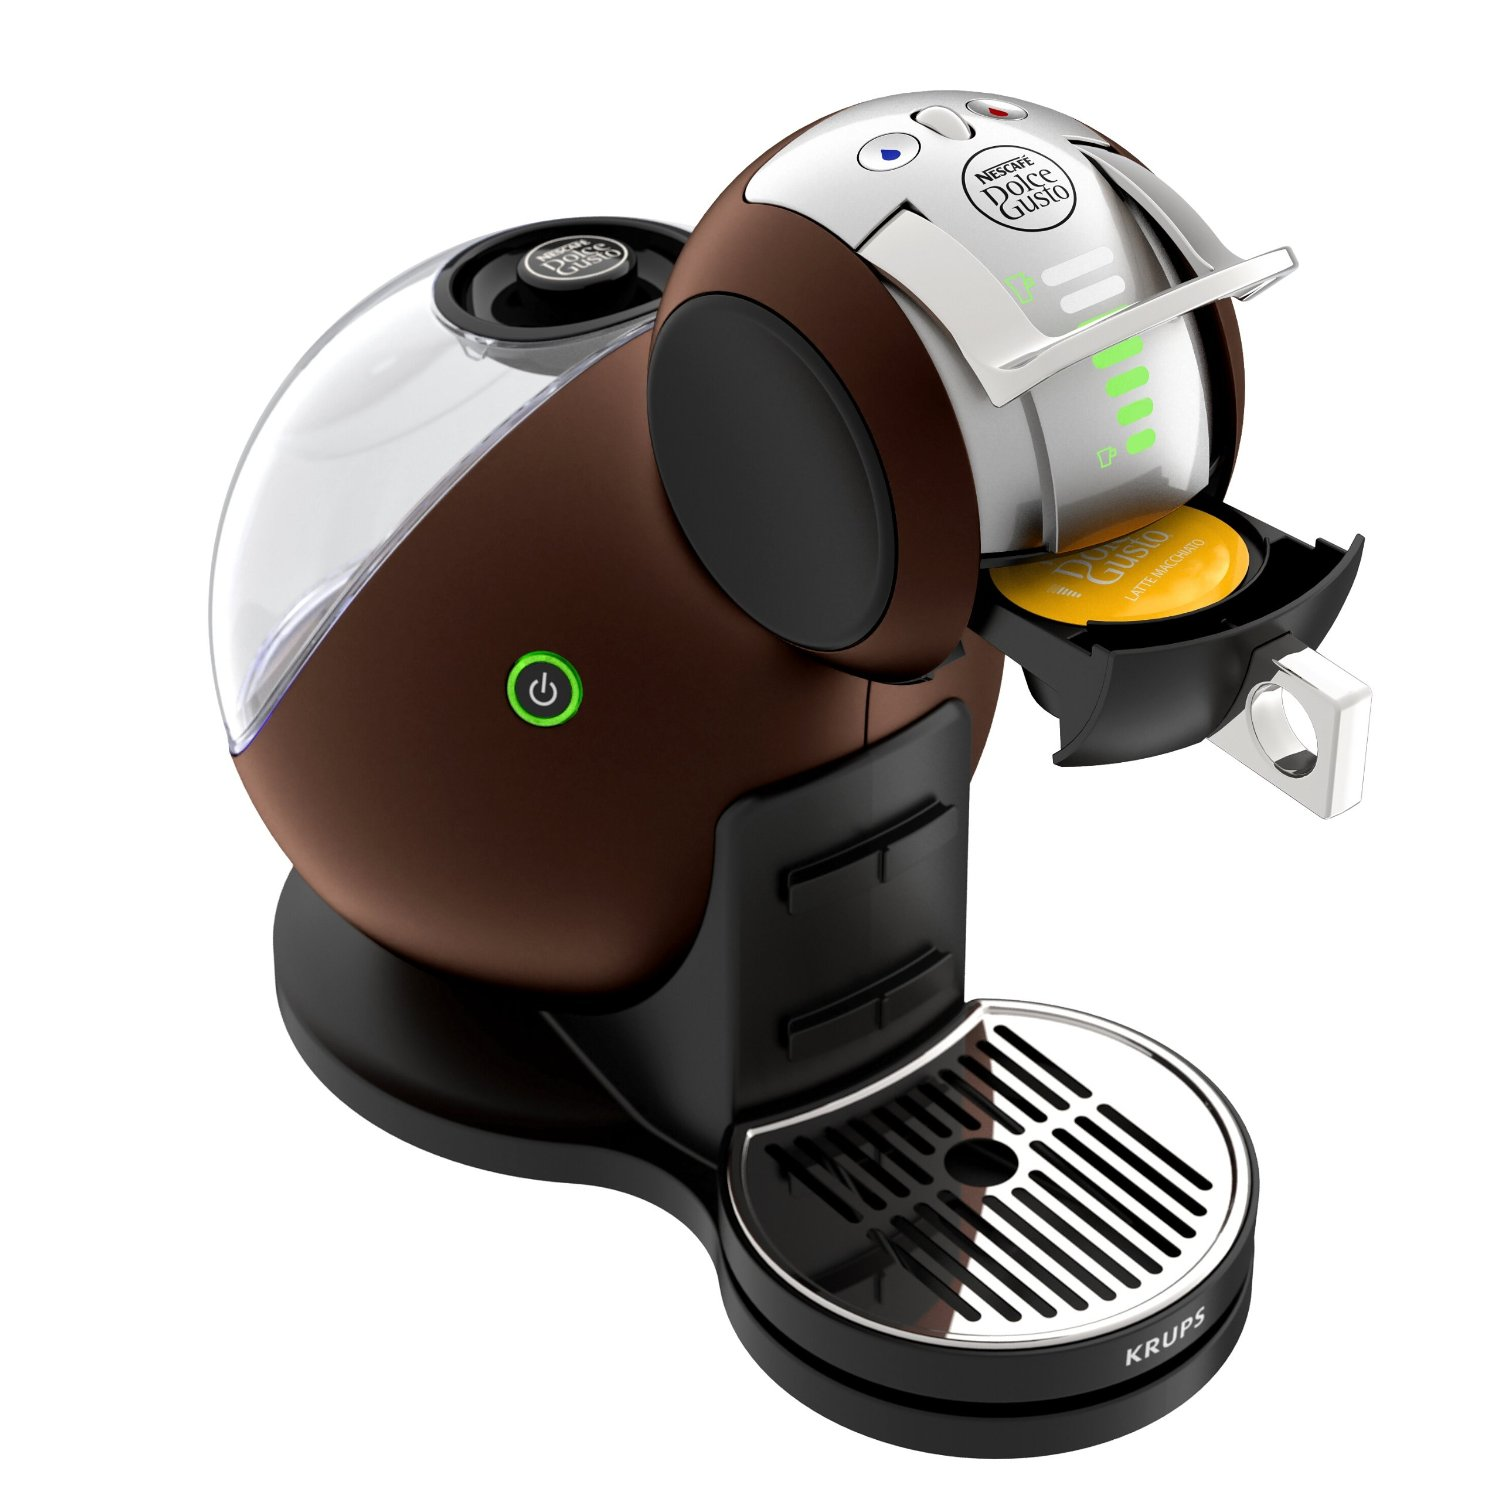 krups kp2309 nescaf dolce gusto melody 3 automatik in. Black Bedroom Furniture Sets. Home Design Ideas